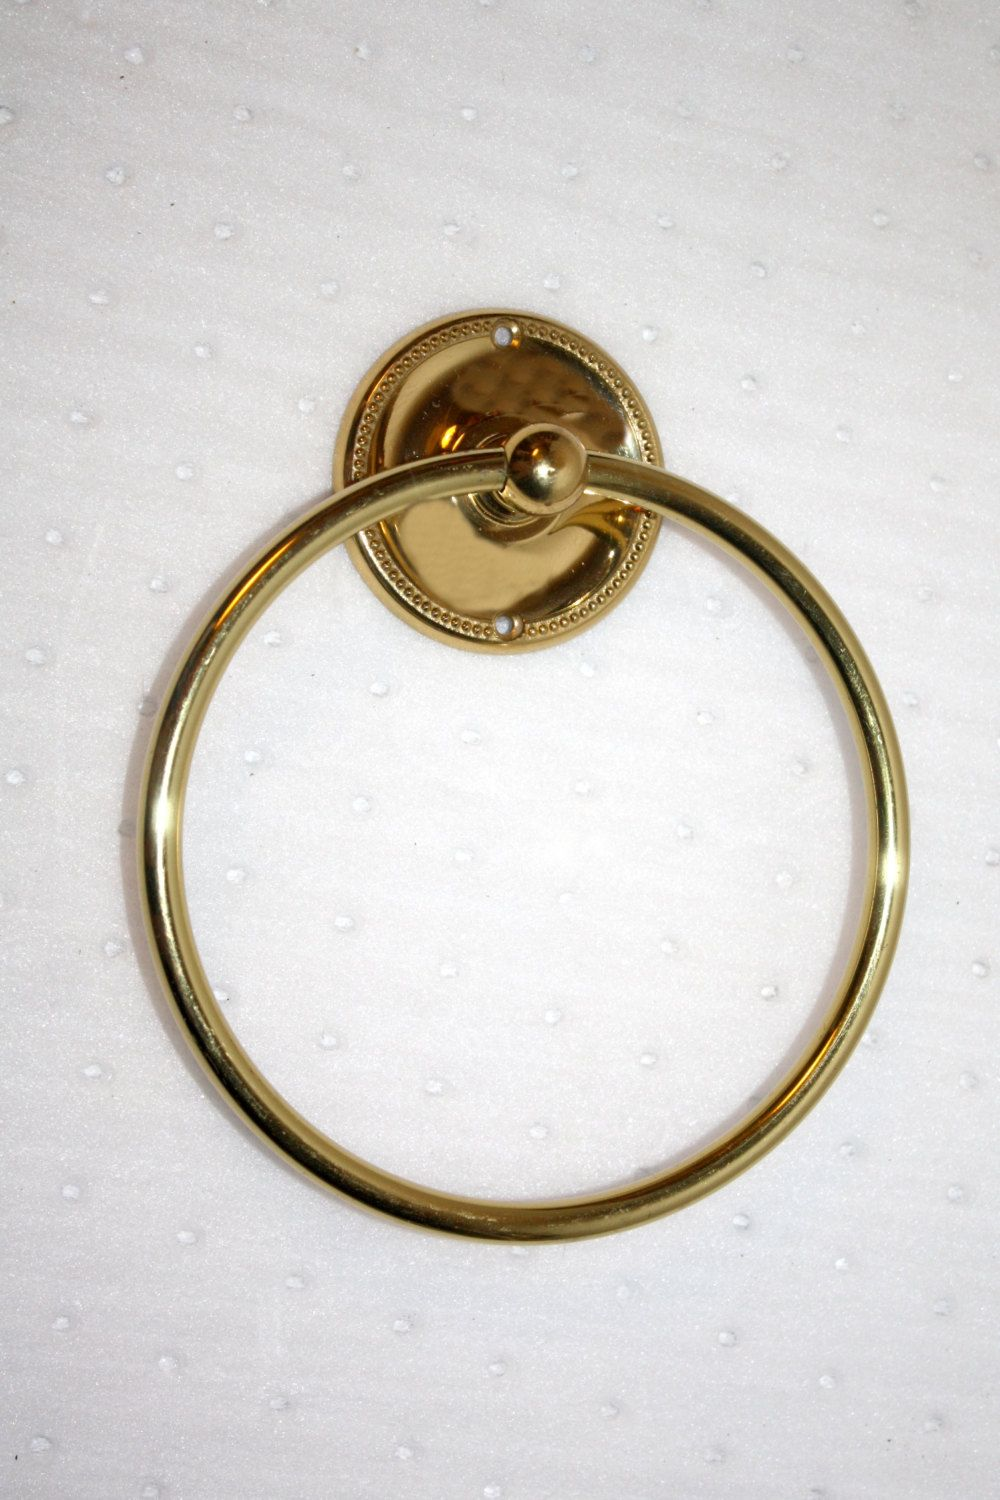 Vintage Solid Brass Hand Towel Ring by Gatco, Excellent Condition ...